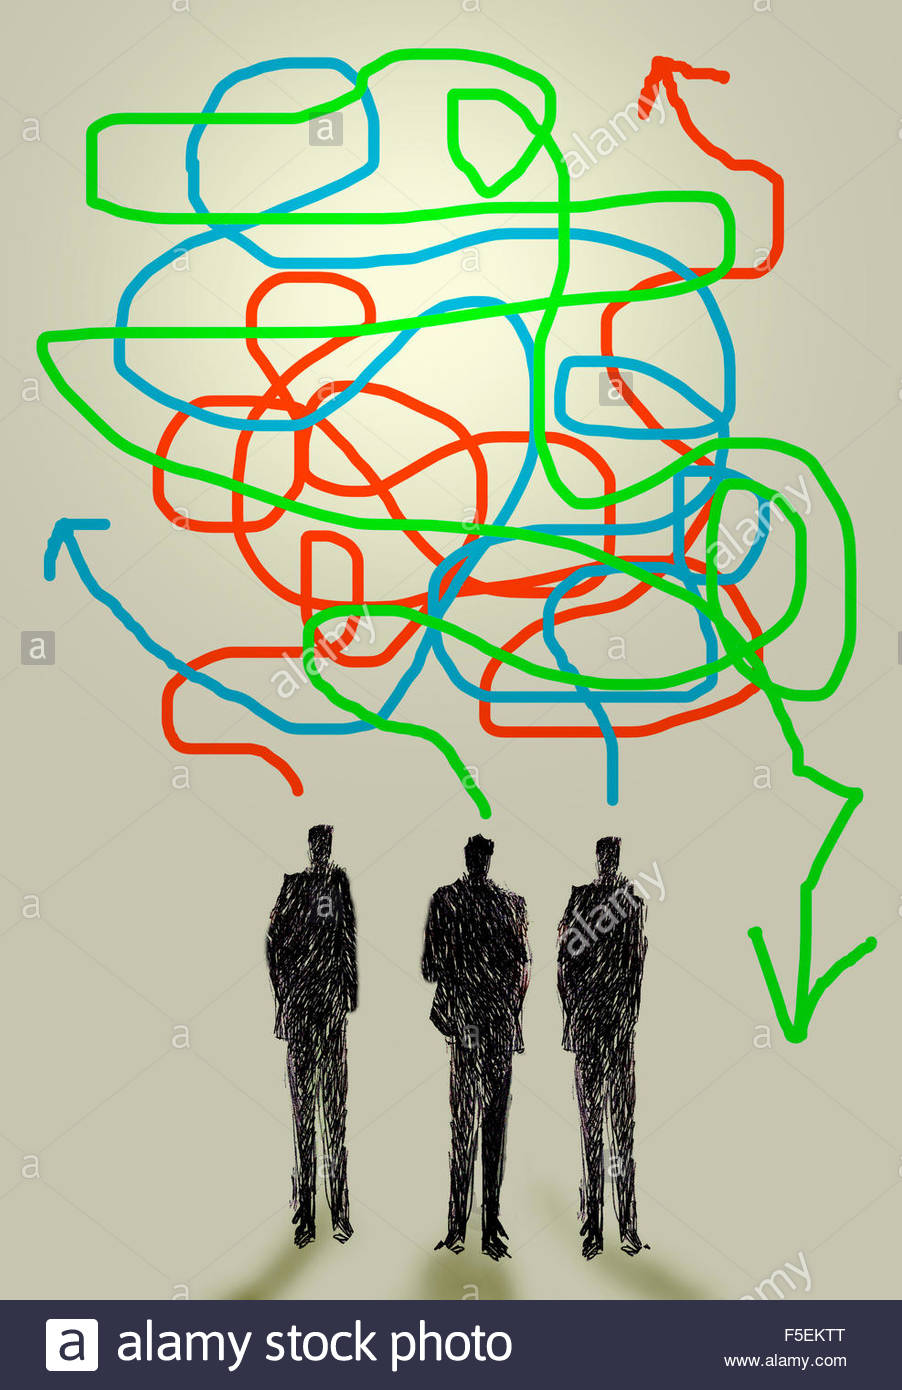 Three businessmen talking with confused tangled arrows - Stock Image